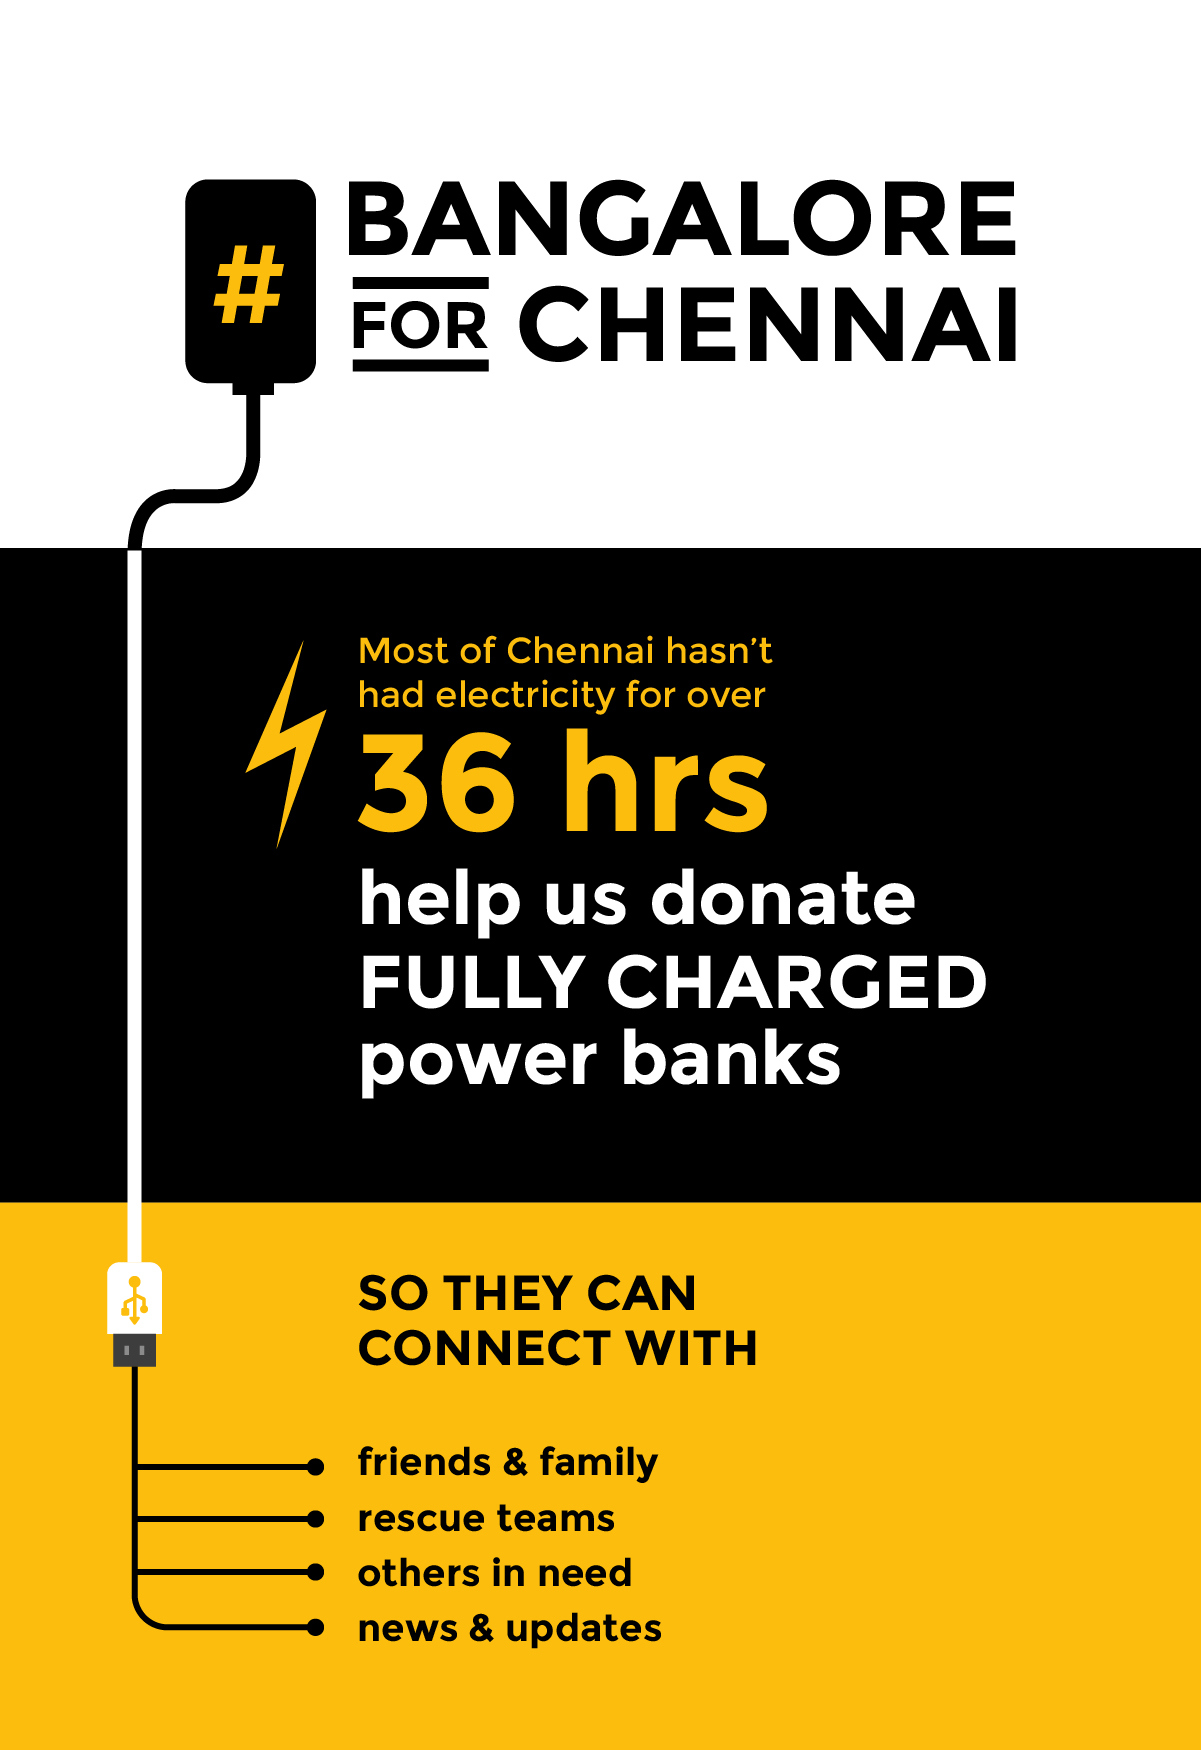 Poster explaining how power banks will help the flood victims. Image via Bangalore for Chennai